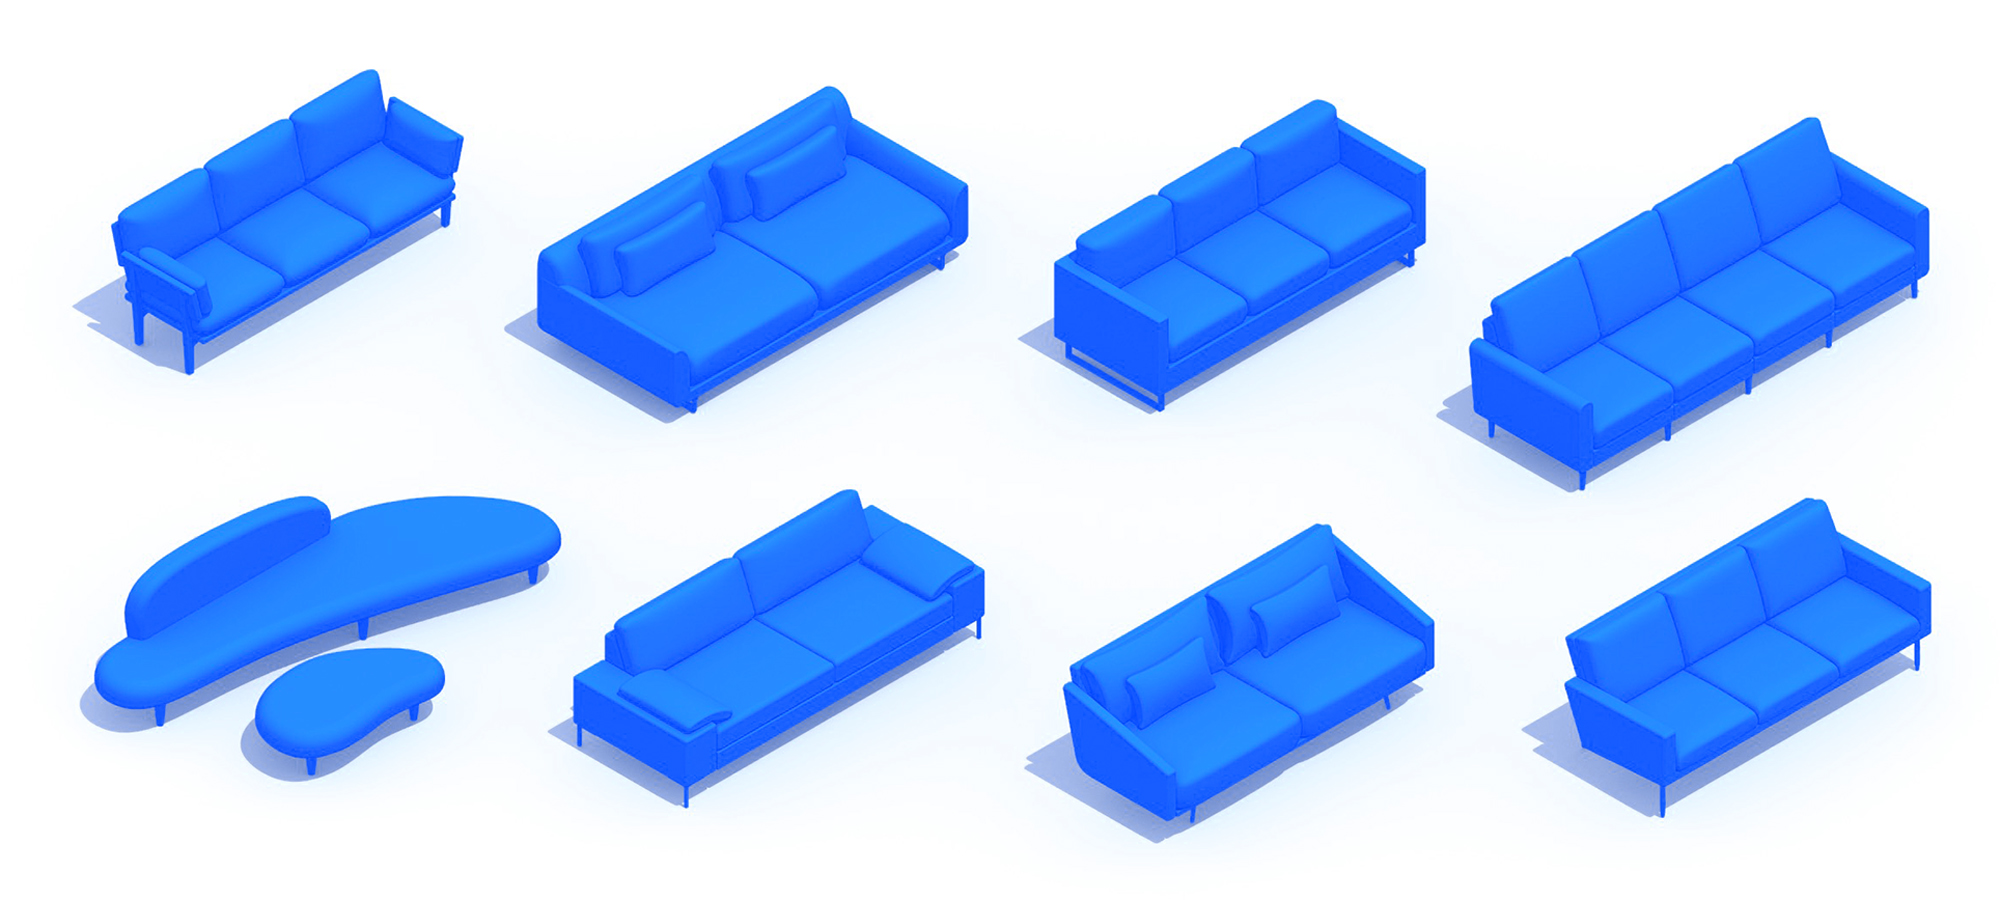 Assorted group of scaled 3D Couches (Sofas) representing a range of sizes, styles, functions and designs